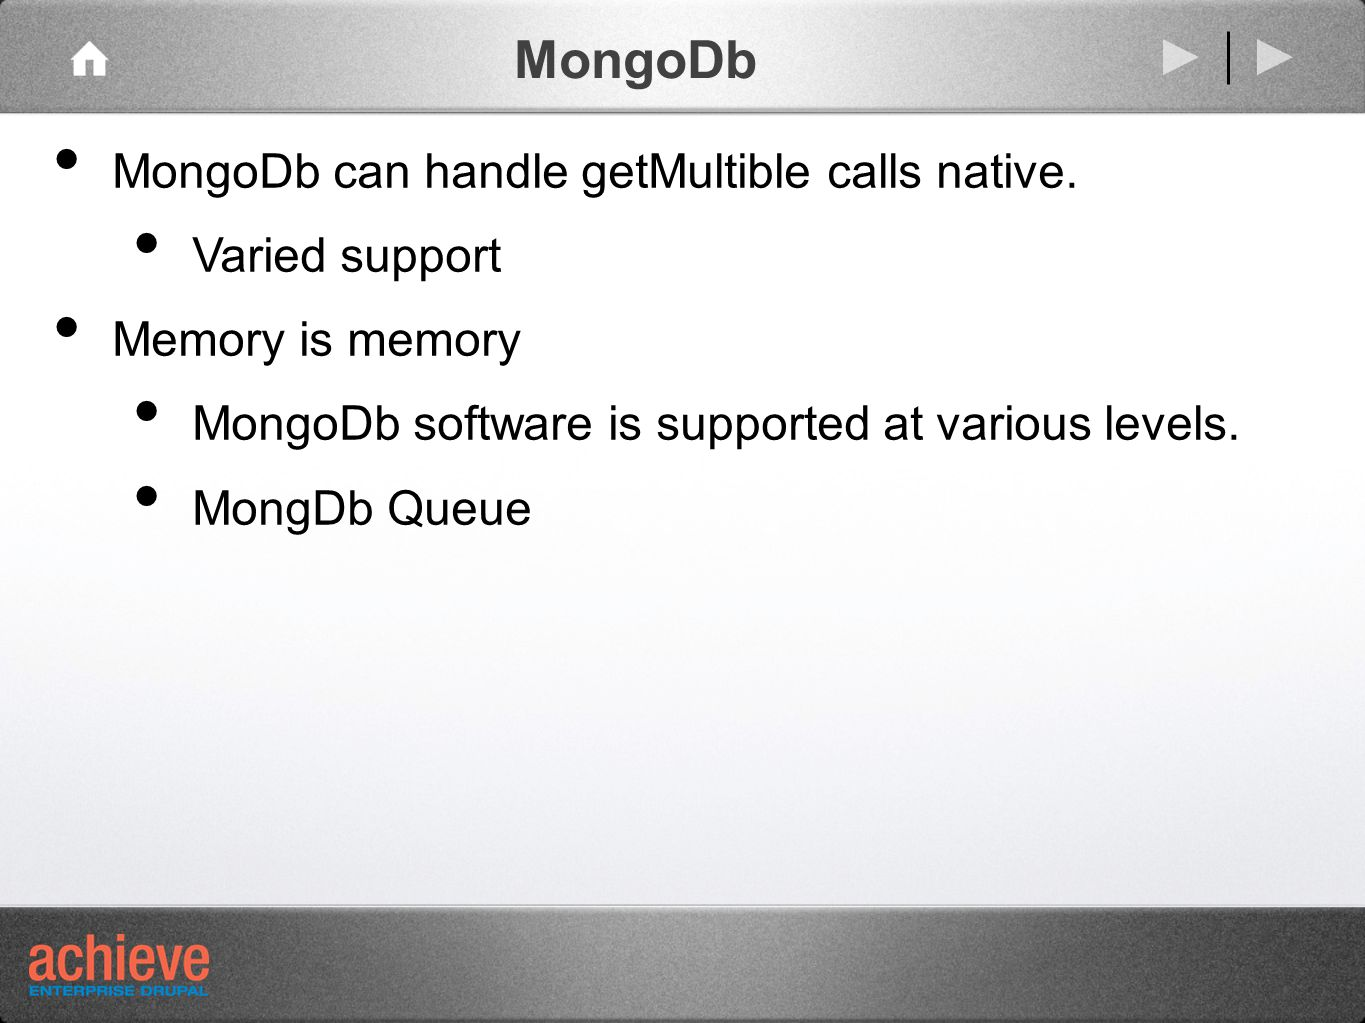 MongoDb MongoDb can handle getMultible calls native.